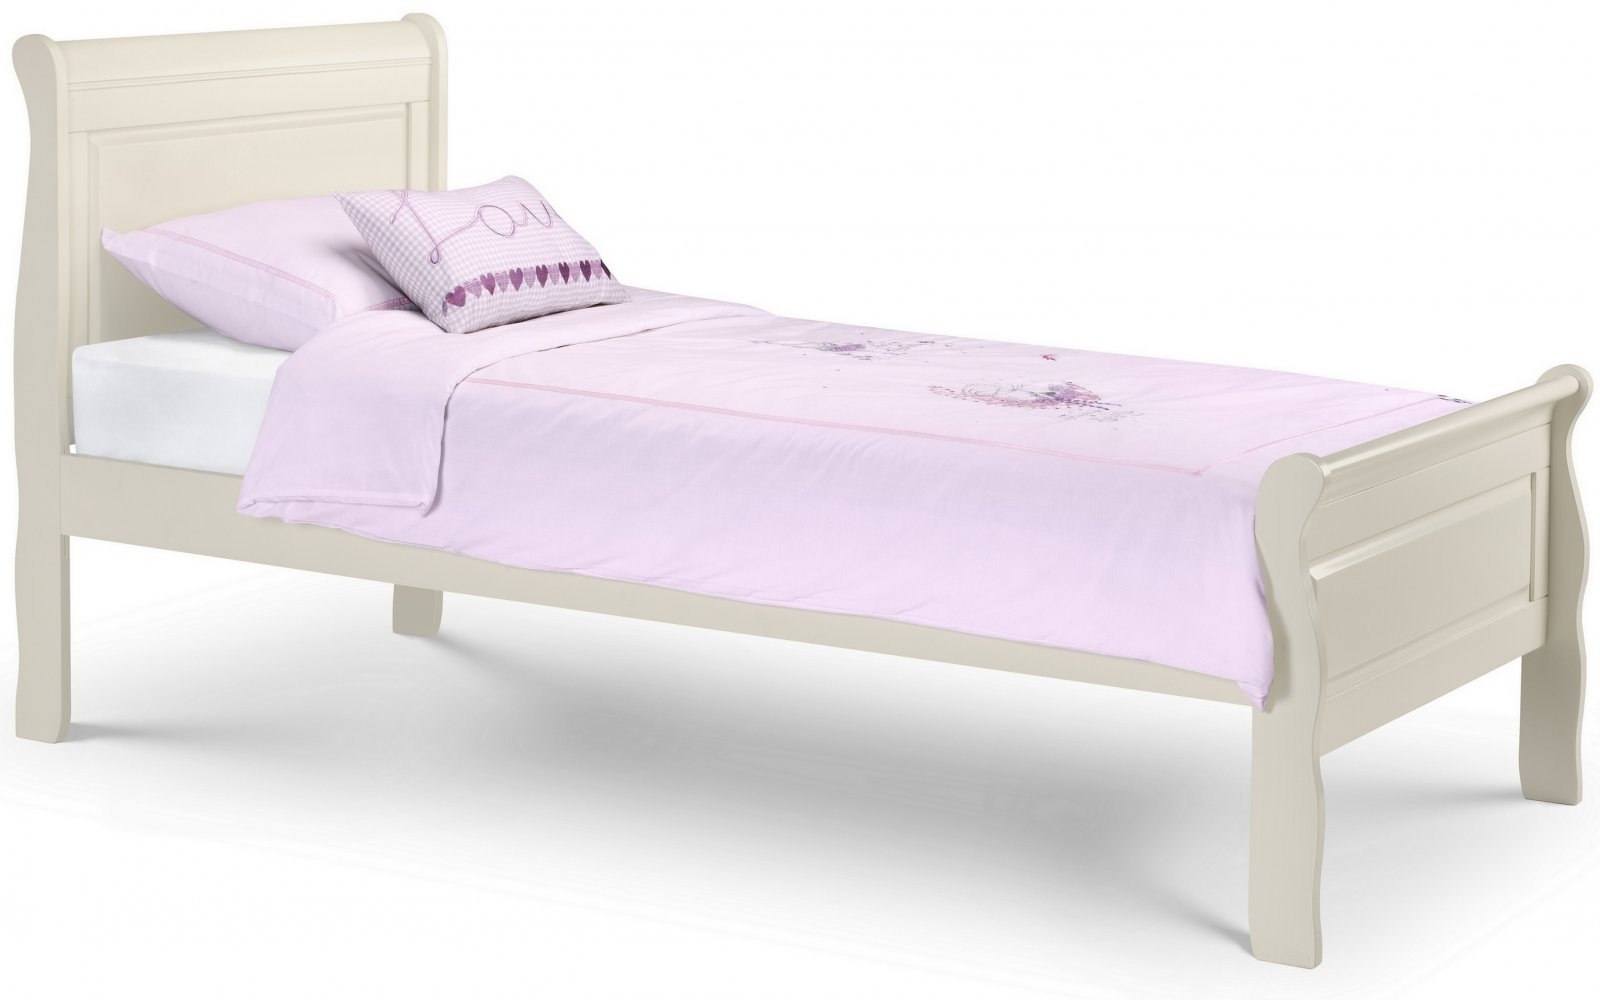 Bed 405 Stone White Sleigh Bed